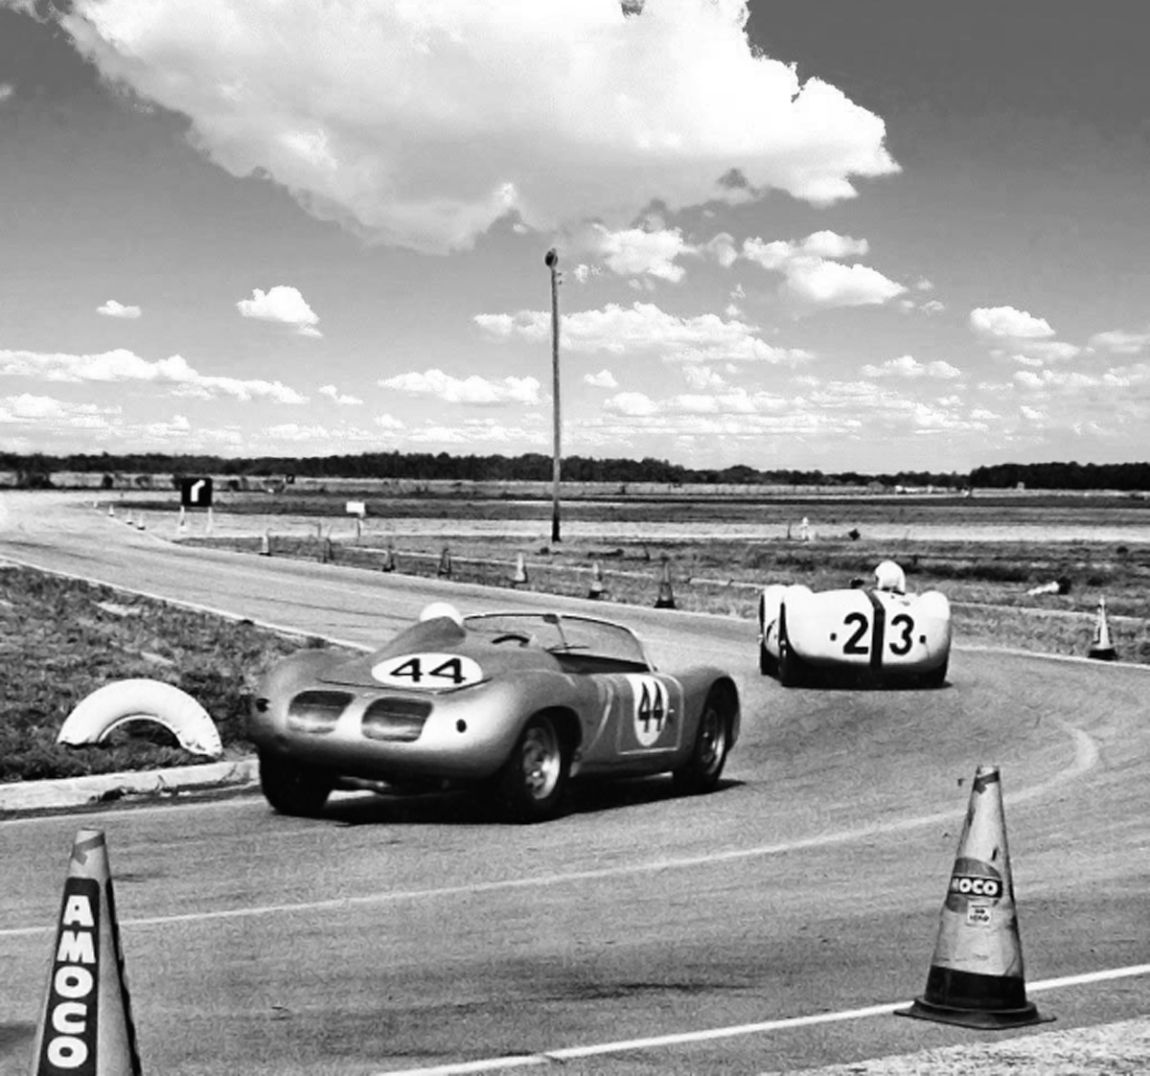 The Brumos Porsche hot on the tail of the leading Maserati driven by Stirling Moss.  BARC boys photo.